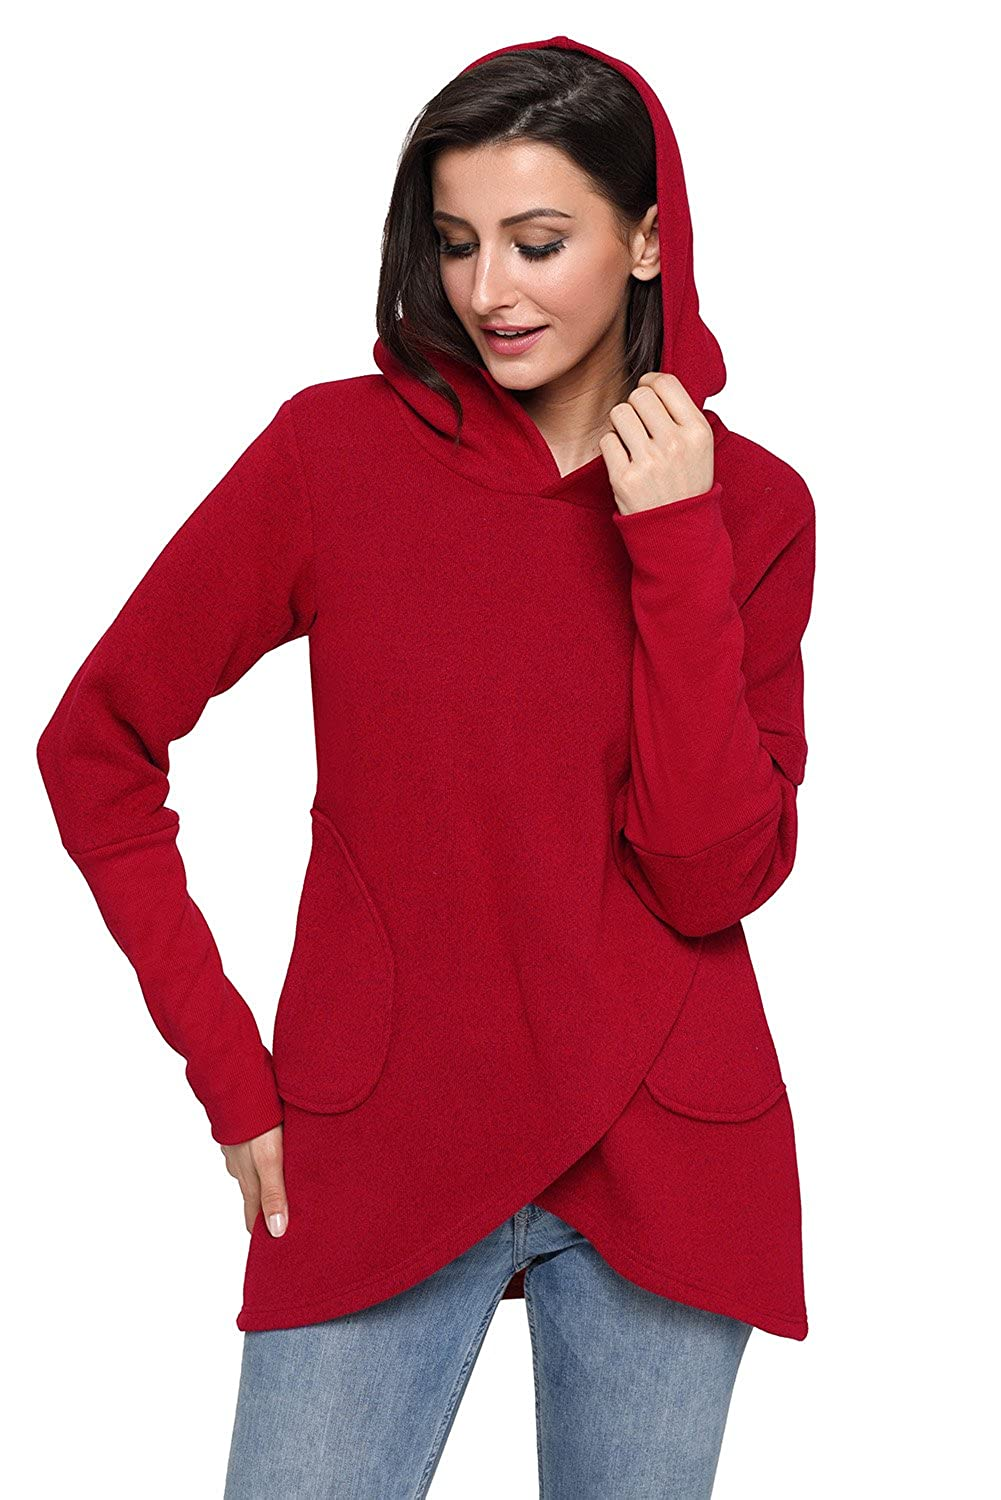 Podlily Women's Double Hooded Striped Long Sleeve Sweatshirt with Pockets Casual Pullover Tops PD251302